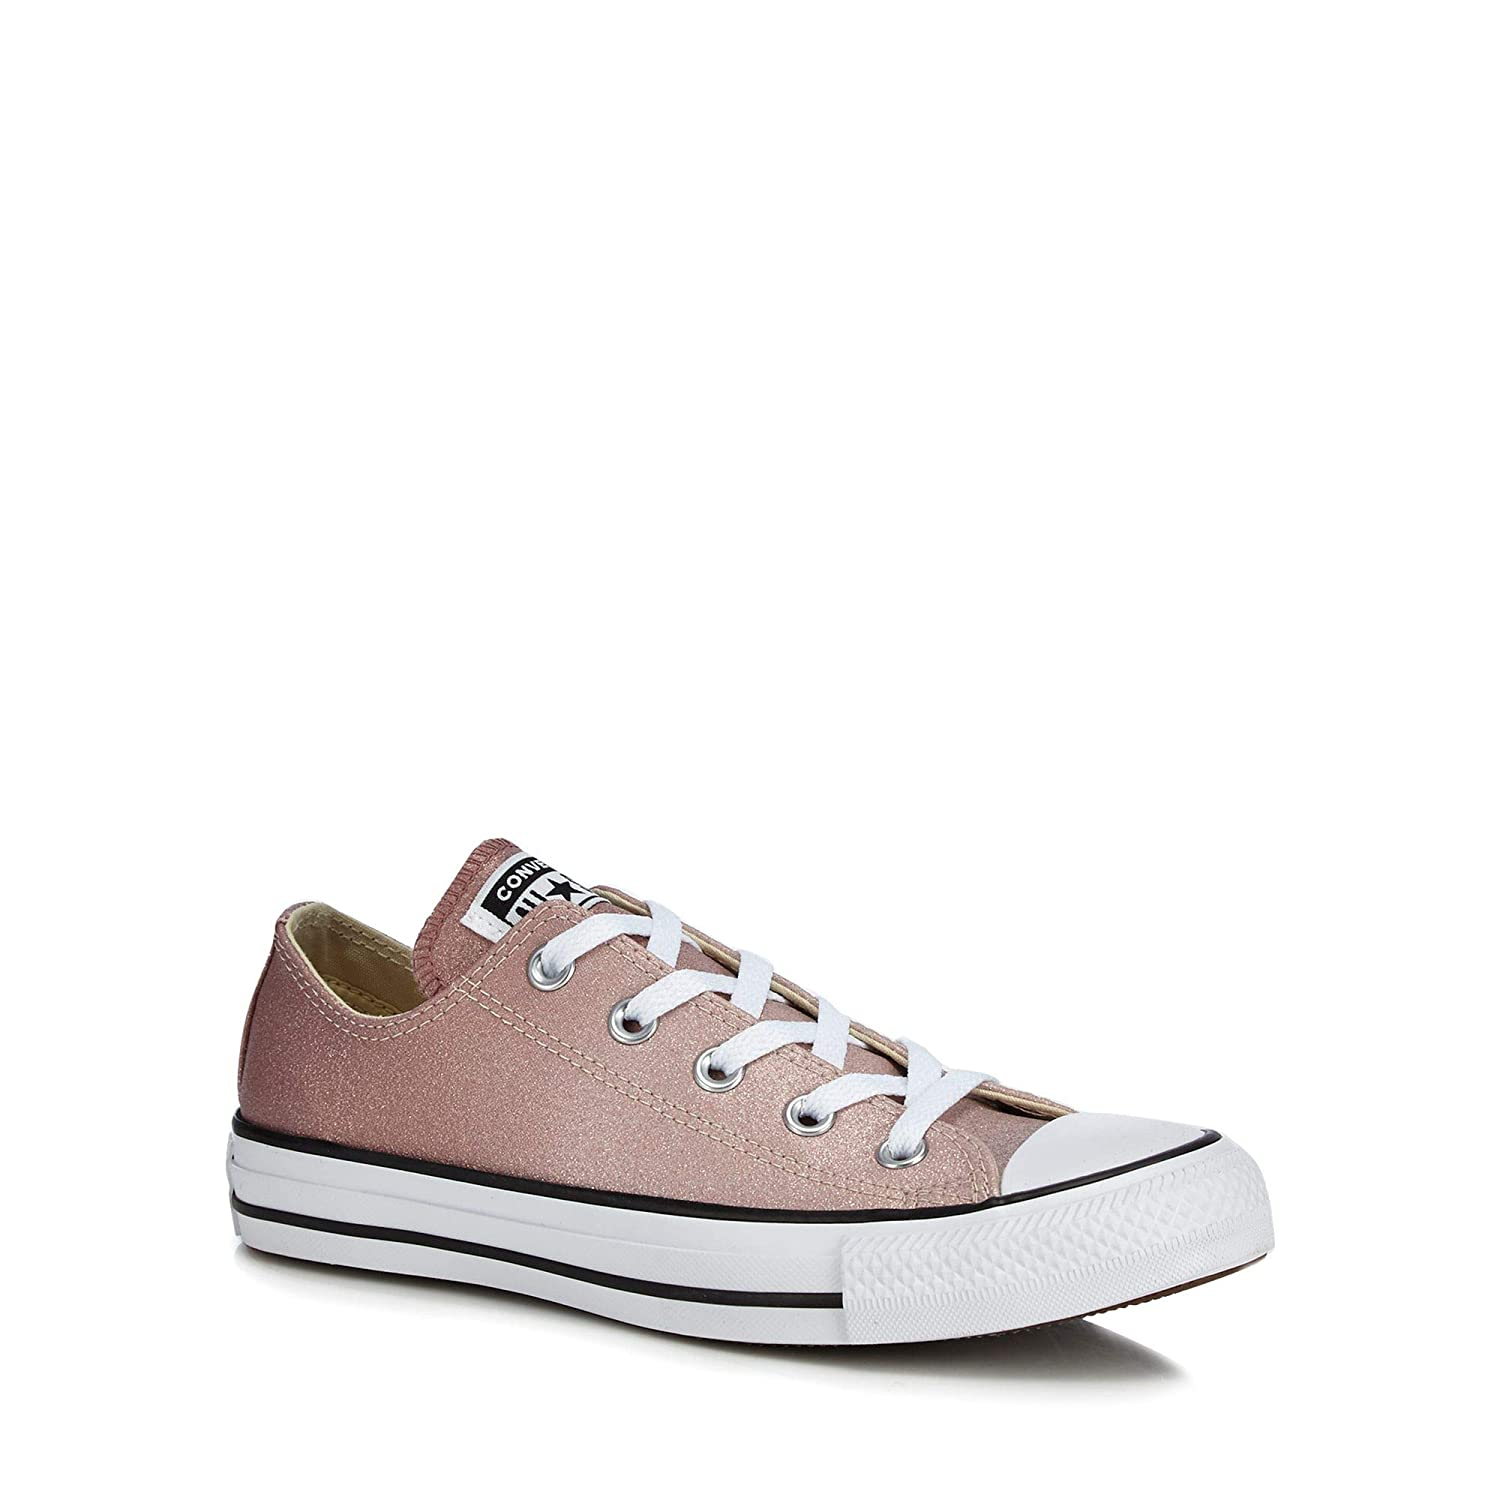 7de301616cb9 Converse Womens Pink Glitter  All Star Ox  Trainers  Amazon.co.uk  Shoes    Bags